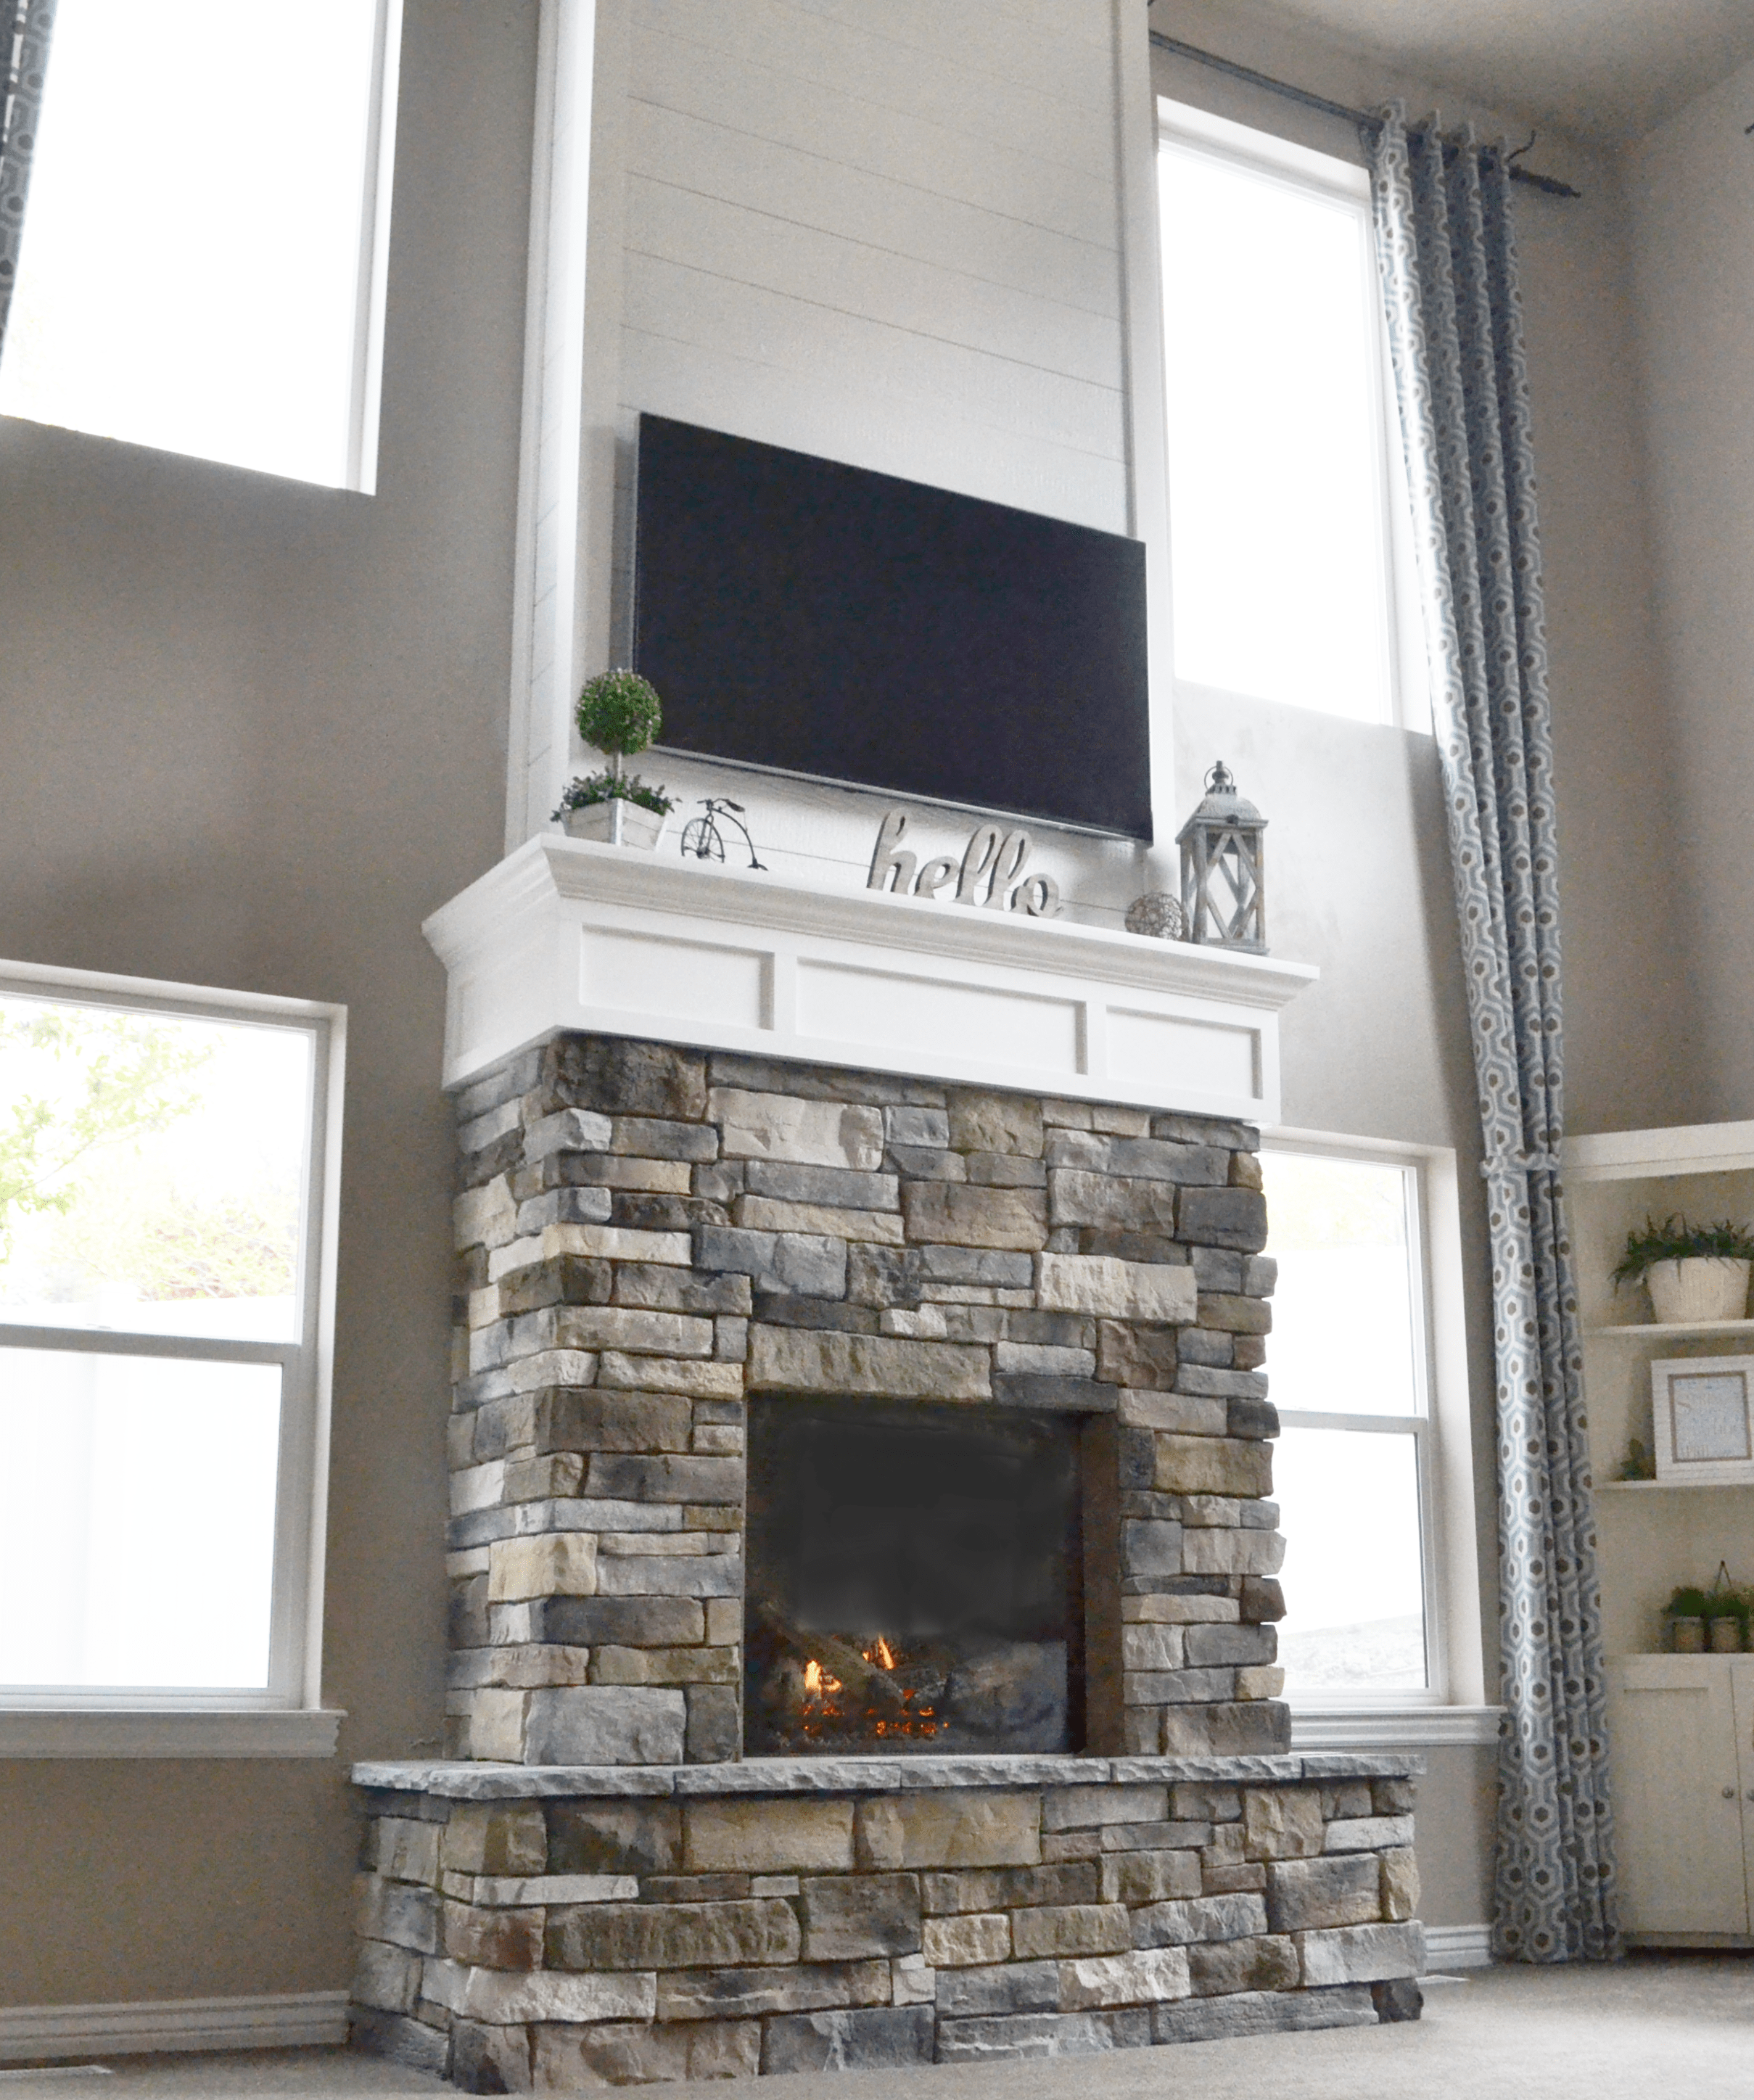 Build Your Own Fireplace New Diy Fireplace with Stone & Shiplap